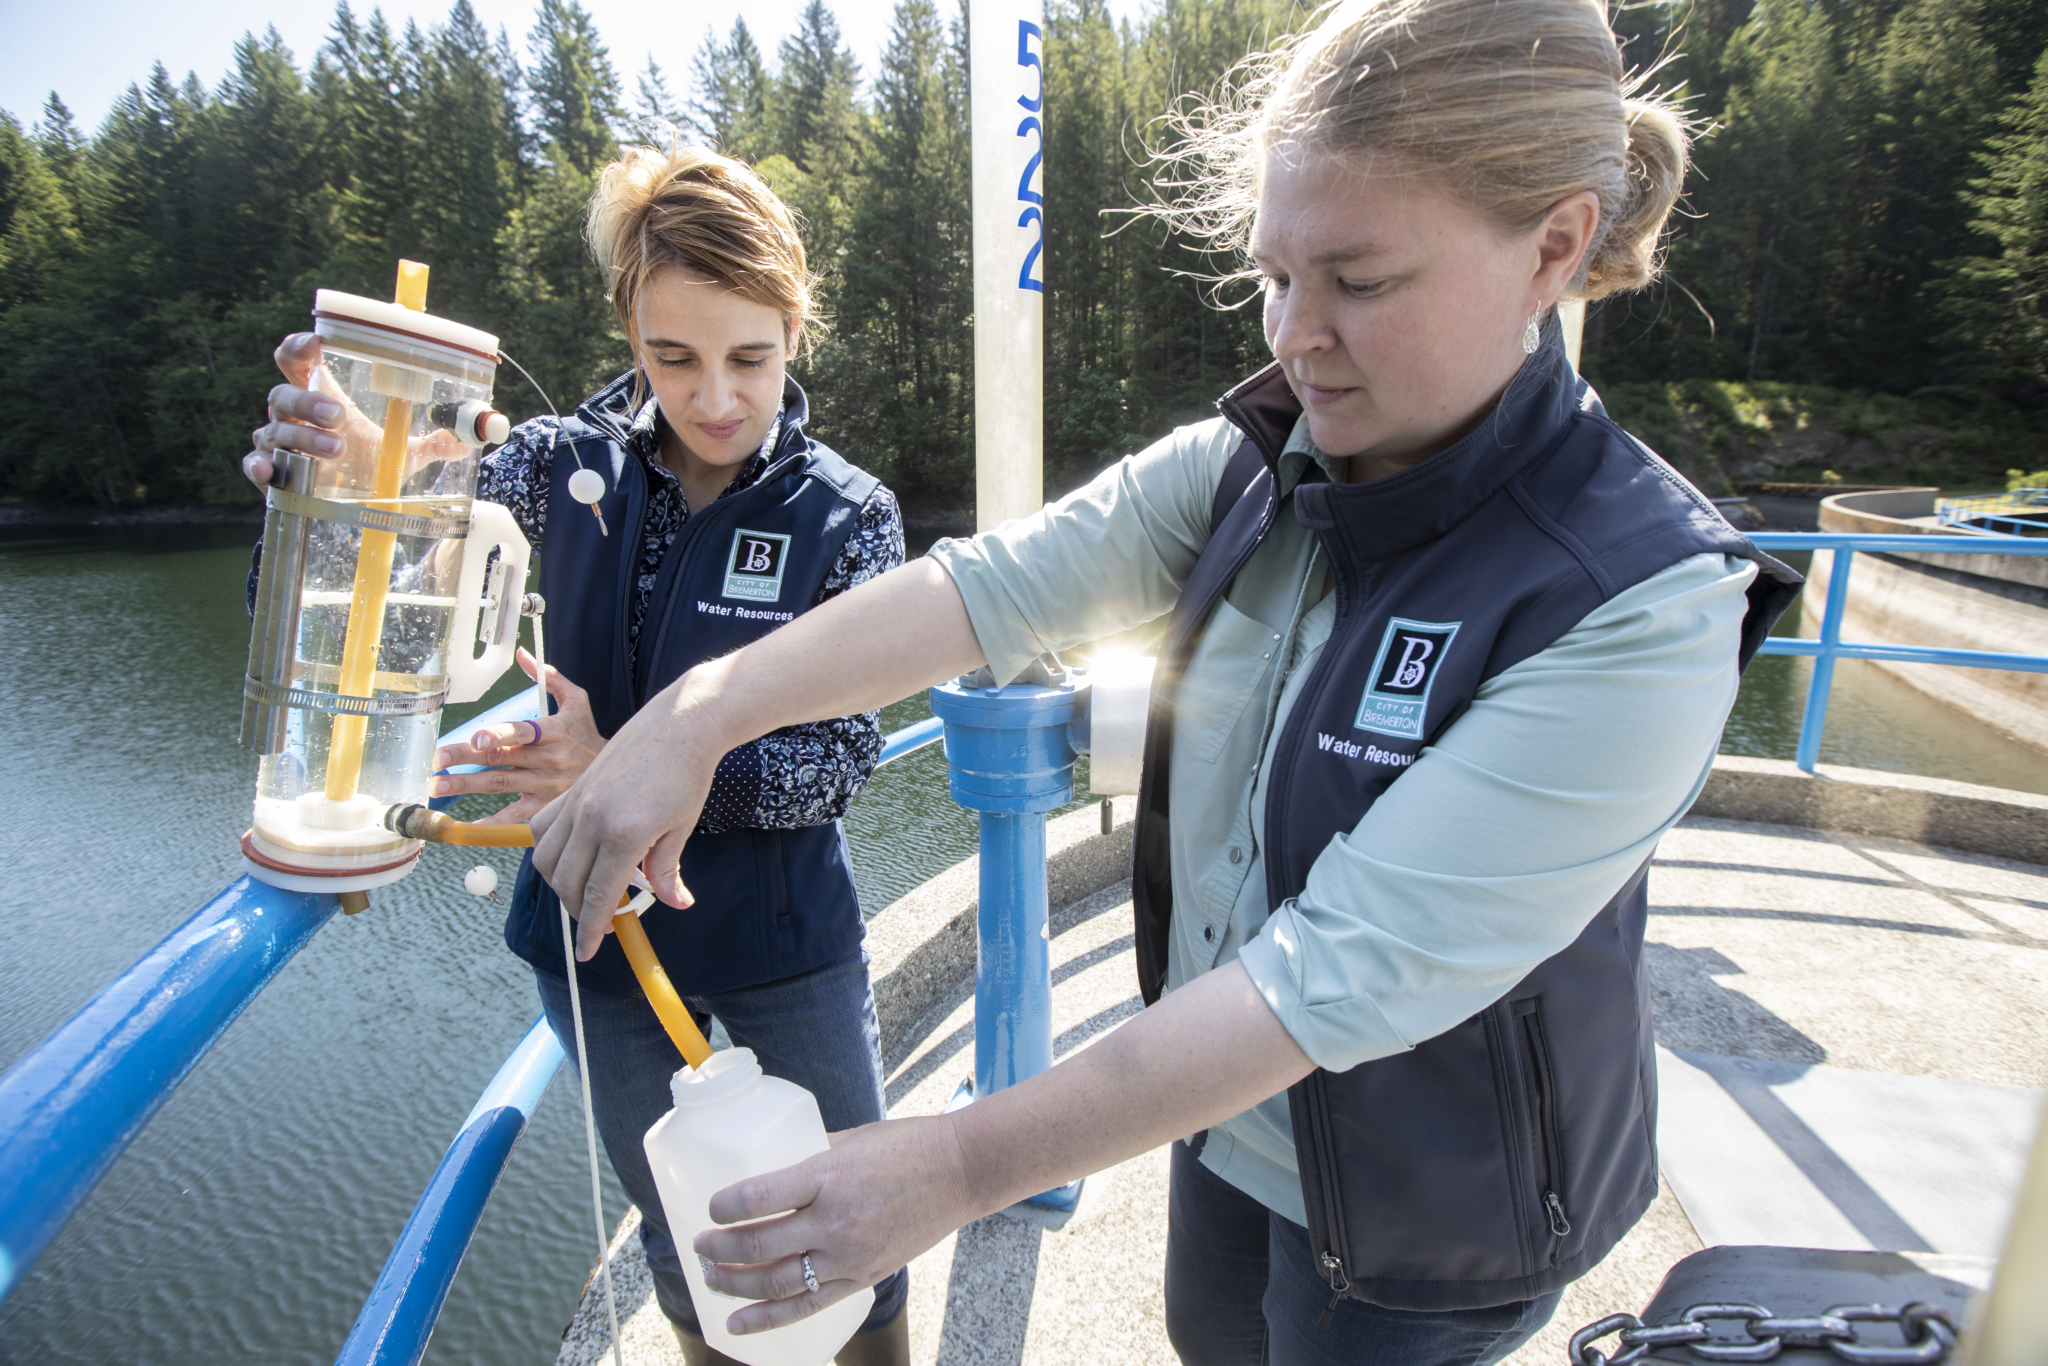 City of Bremerton Water Resources environmental technicians Lisa Campbell and Teresa Smith take a water sample from the Union River Reservoir. They're two of six women working in at the Bremerton facility. (PHOTO by Stephen Brashear)